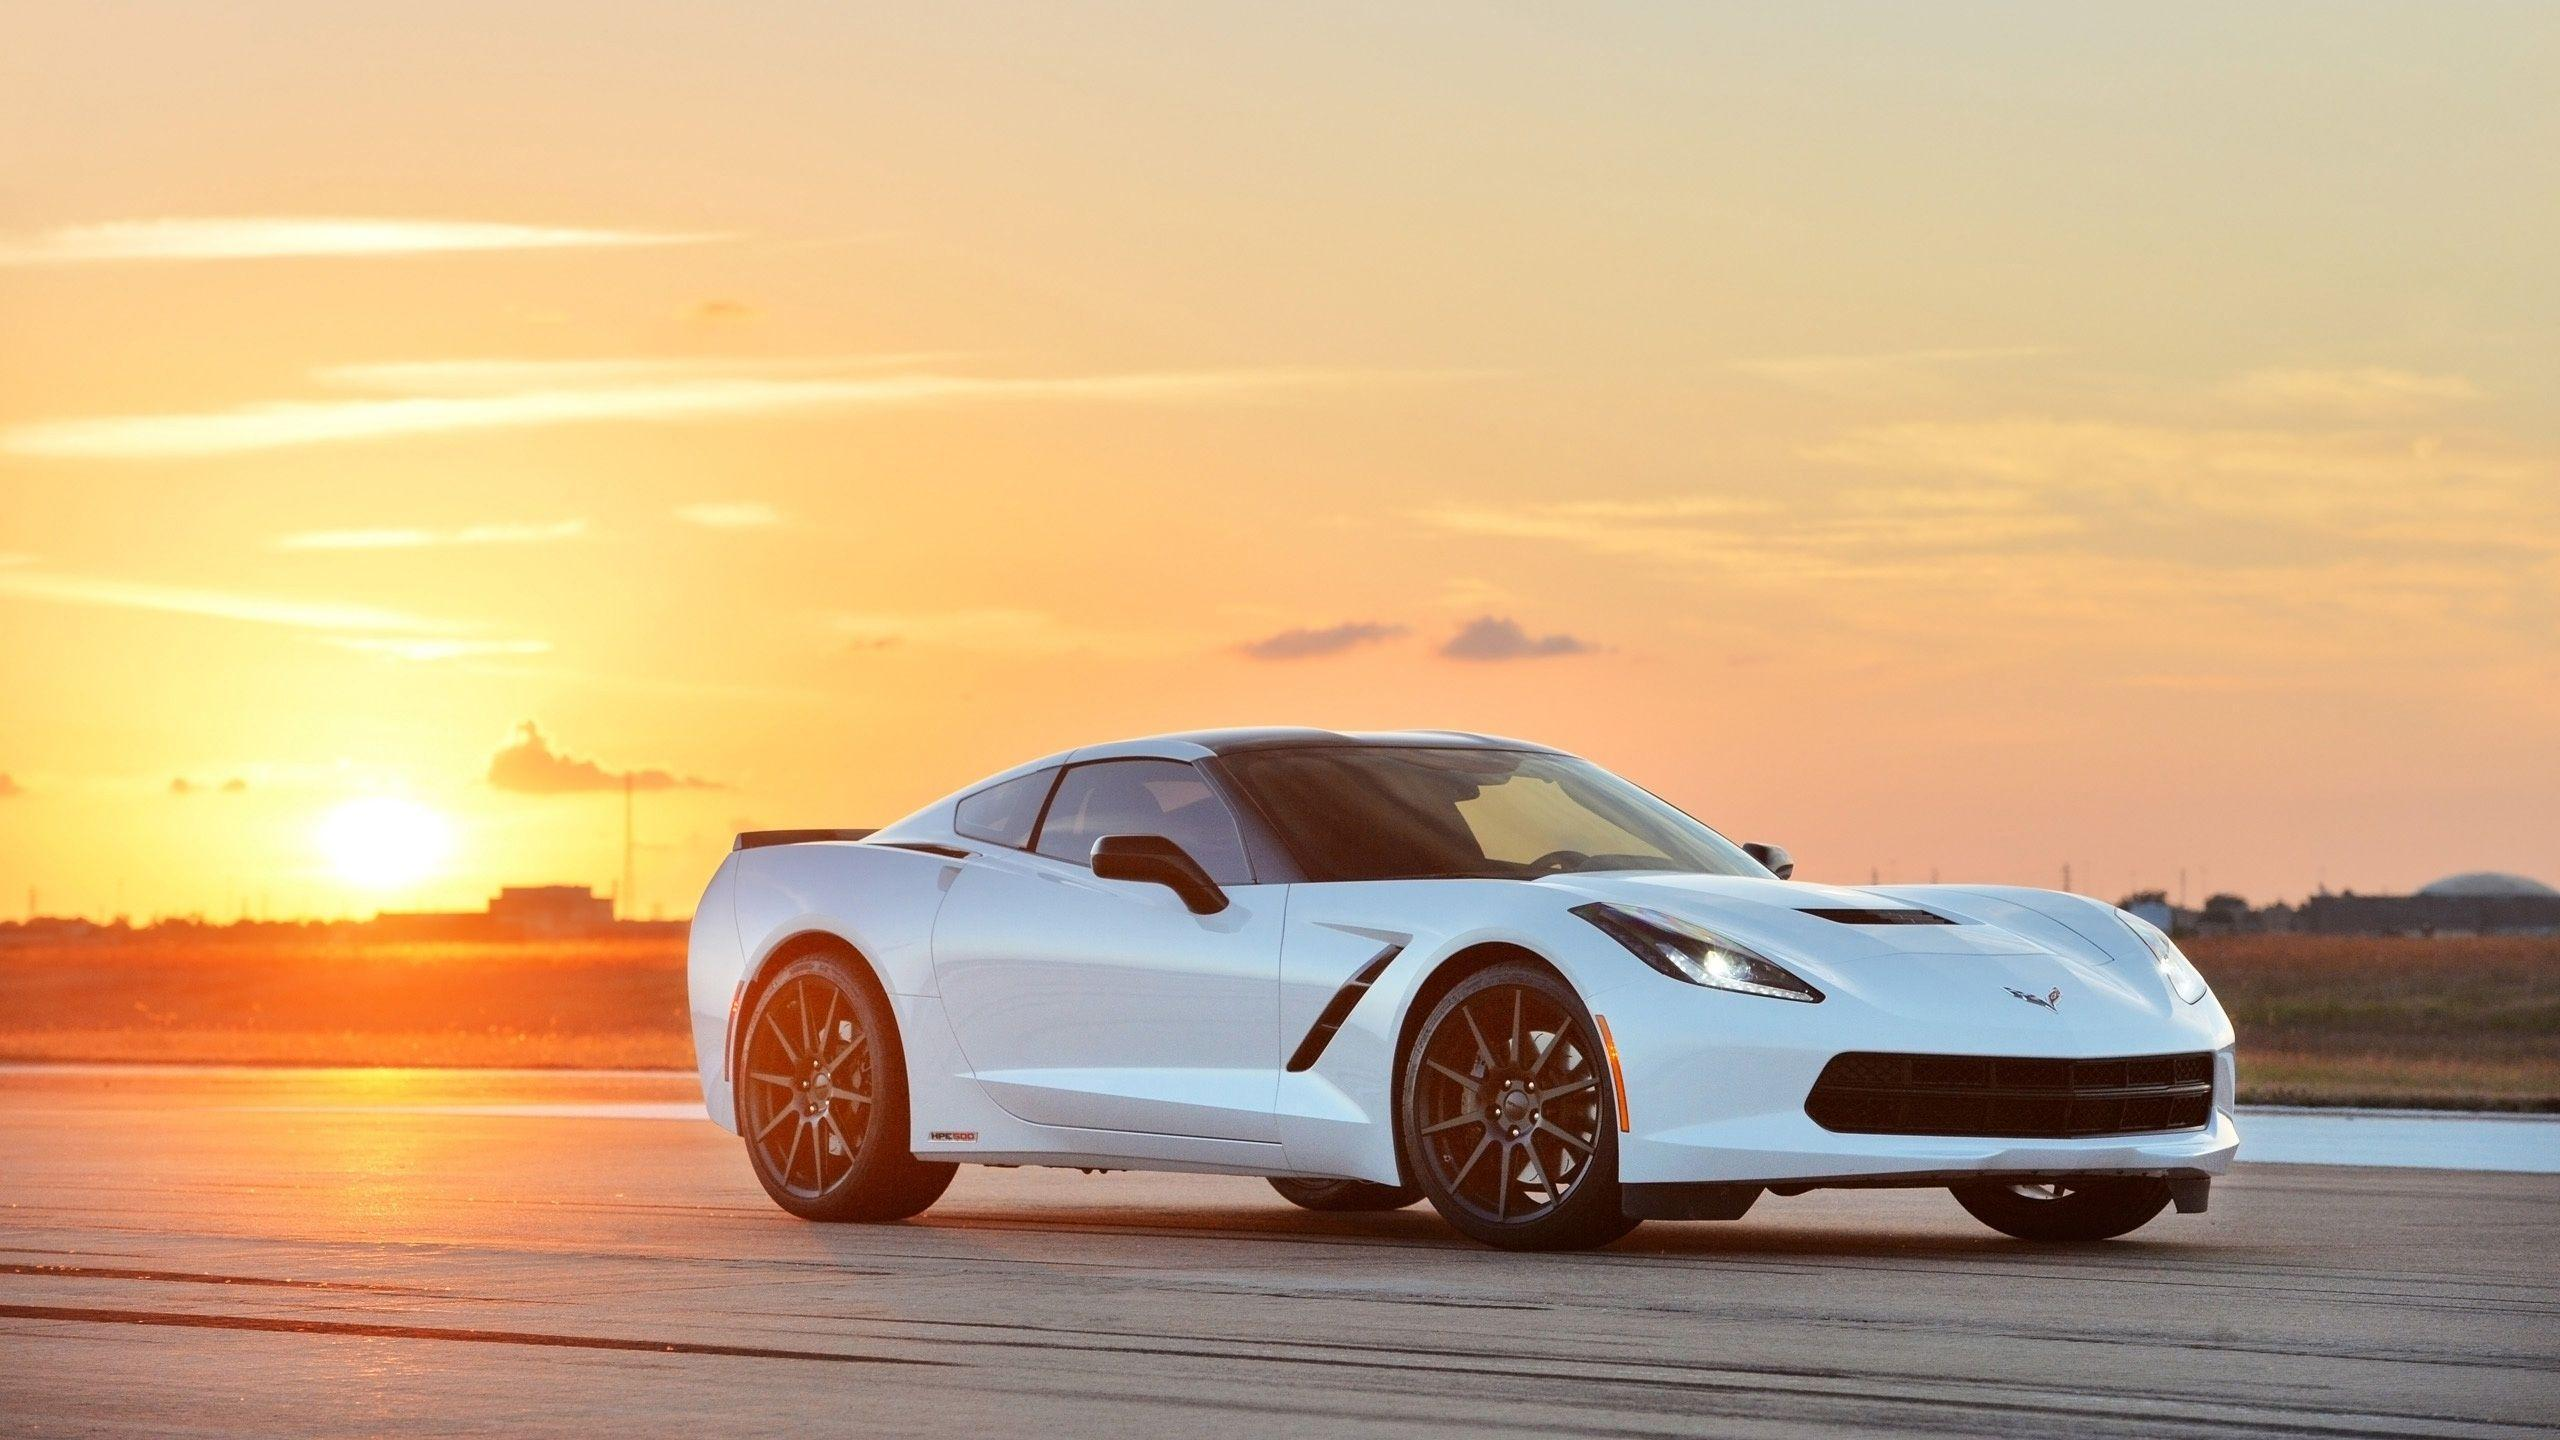 corvette wallpaper hd - photo #1